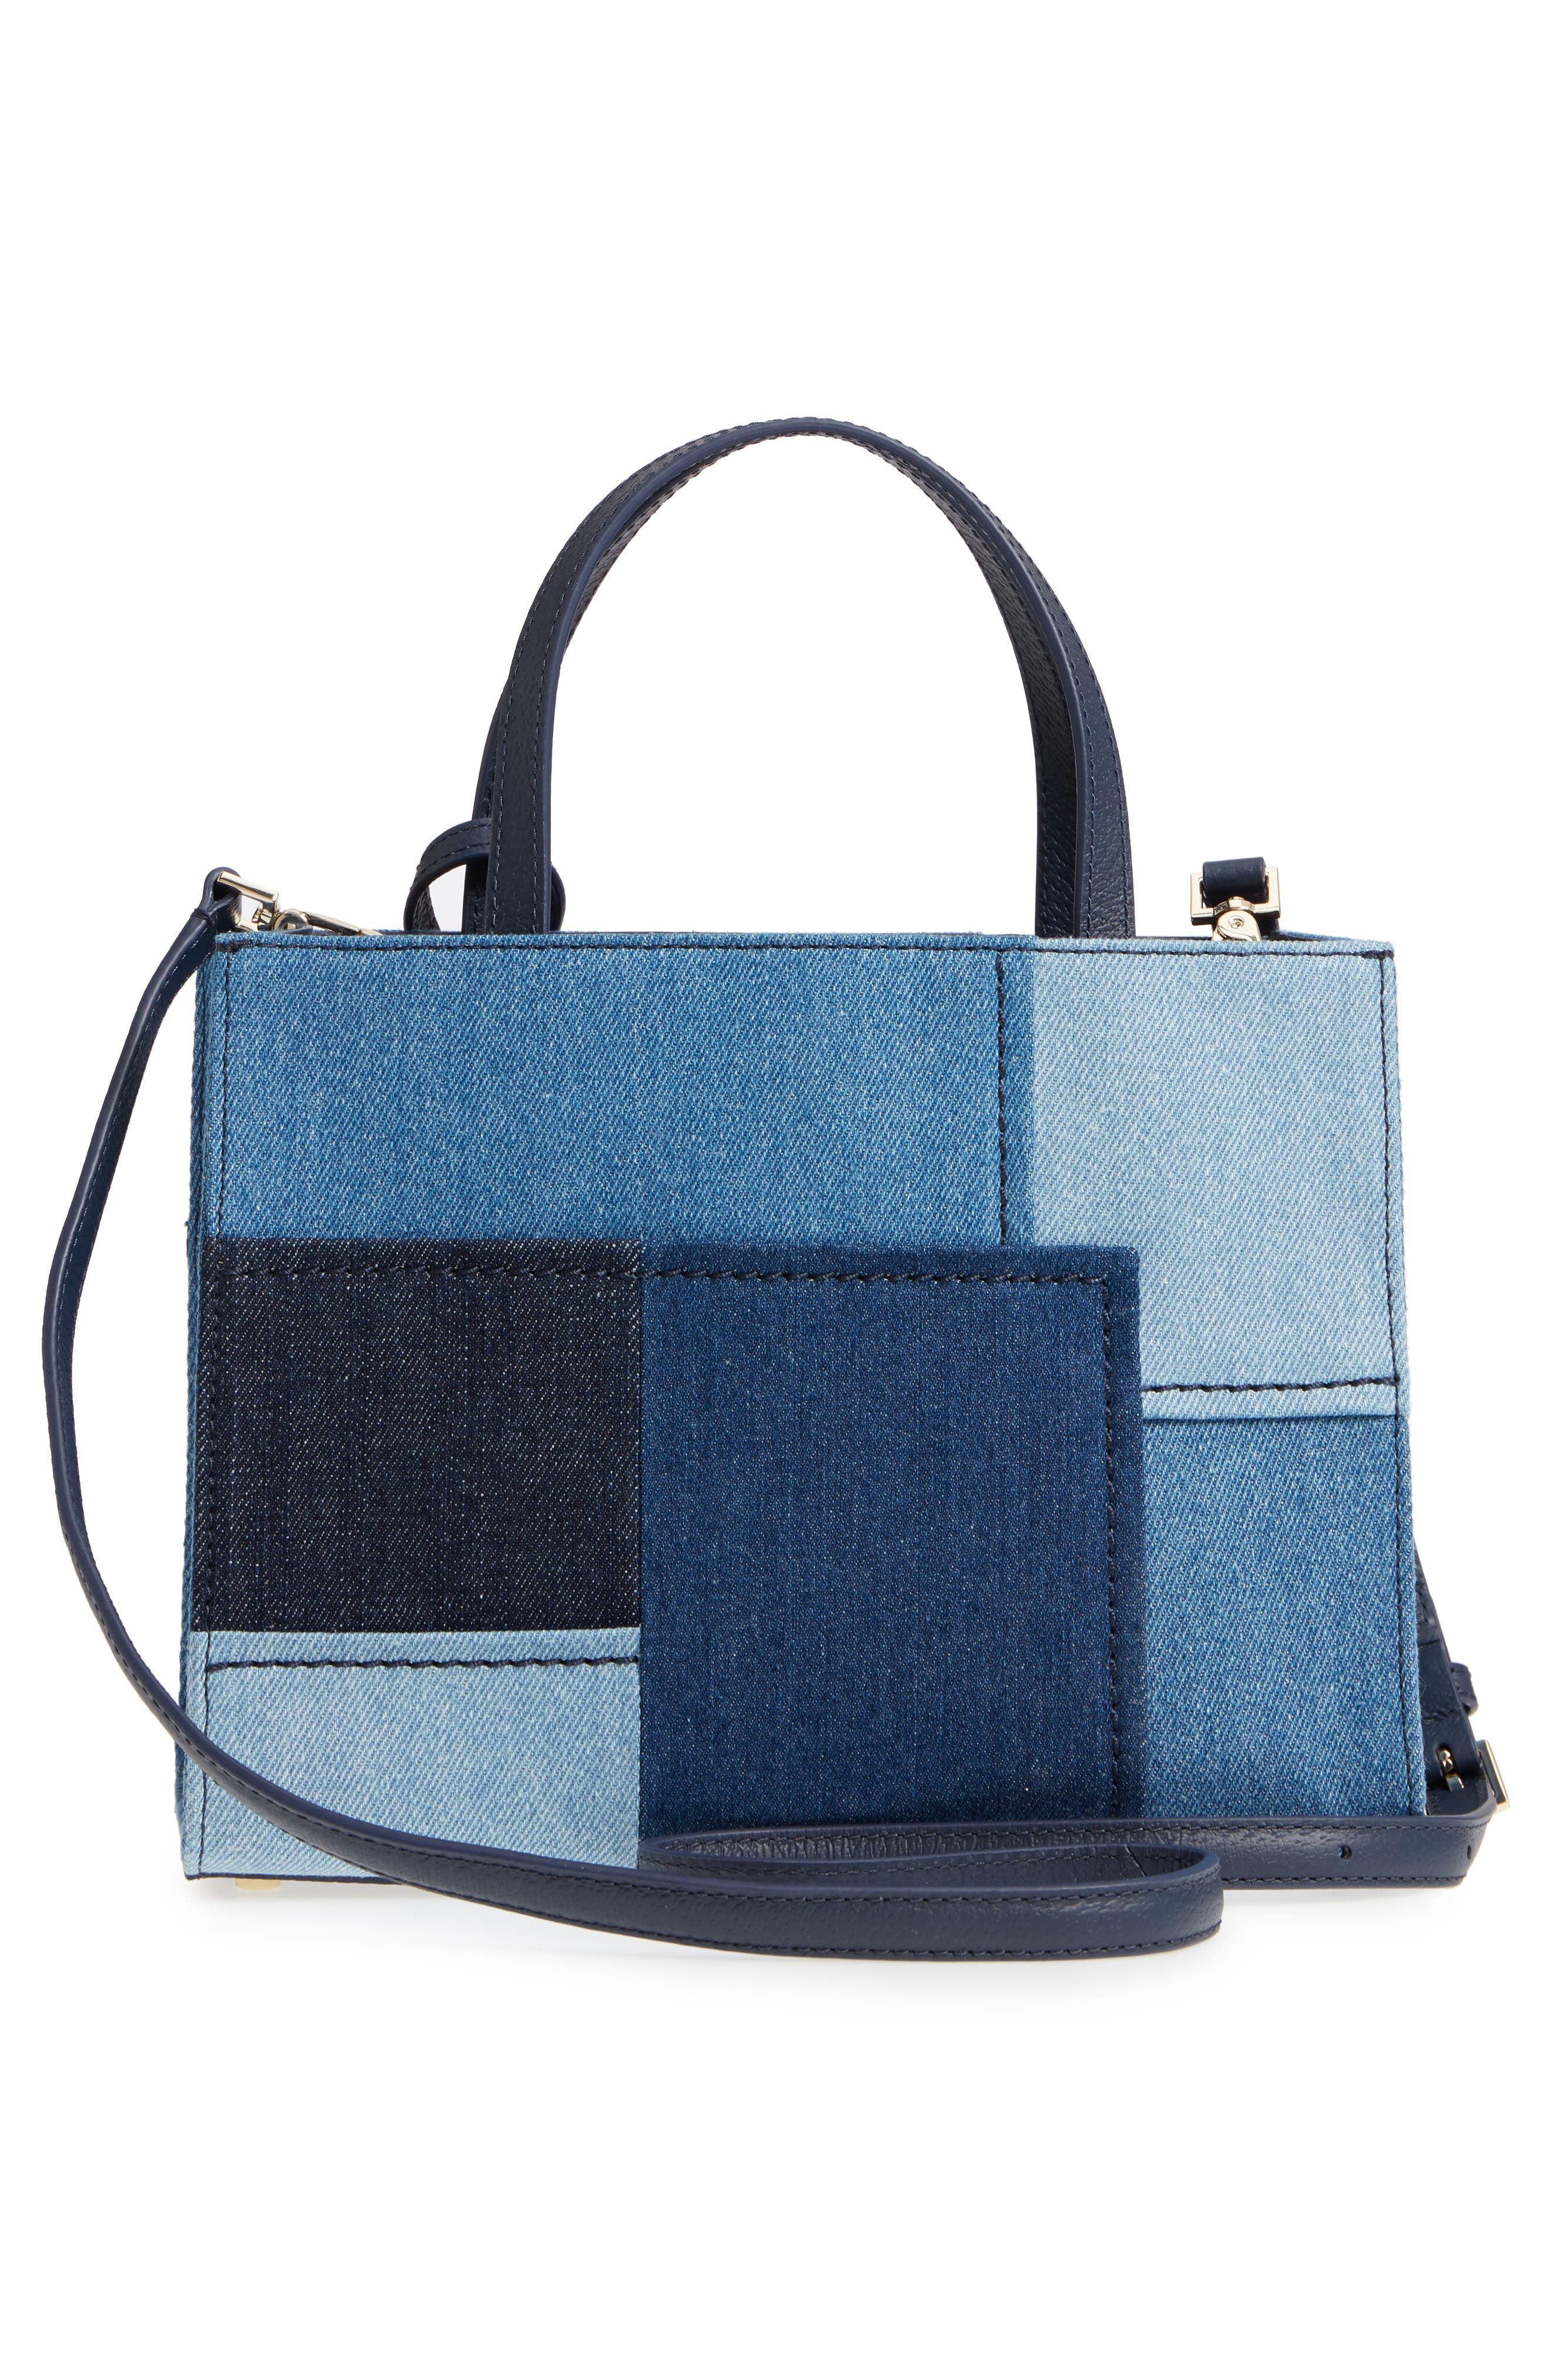 thompson street - sam patchwork denim handbag,                             Alternate thumbnail 3, color,                             400